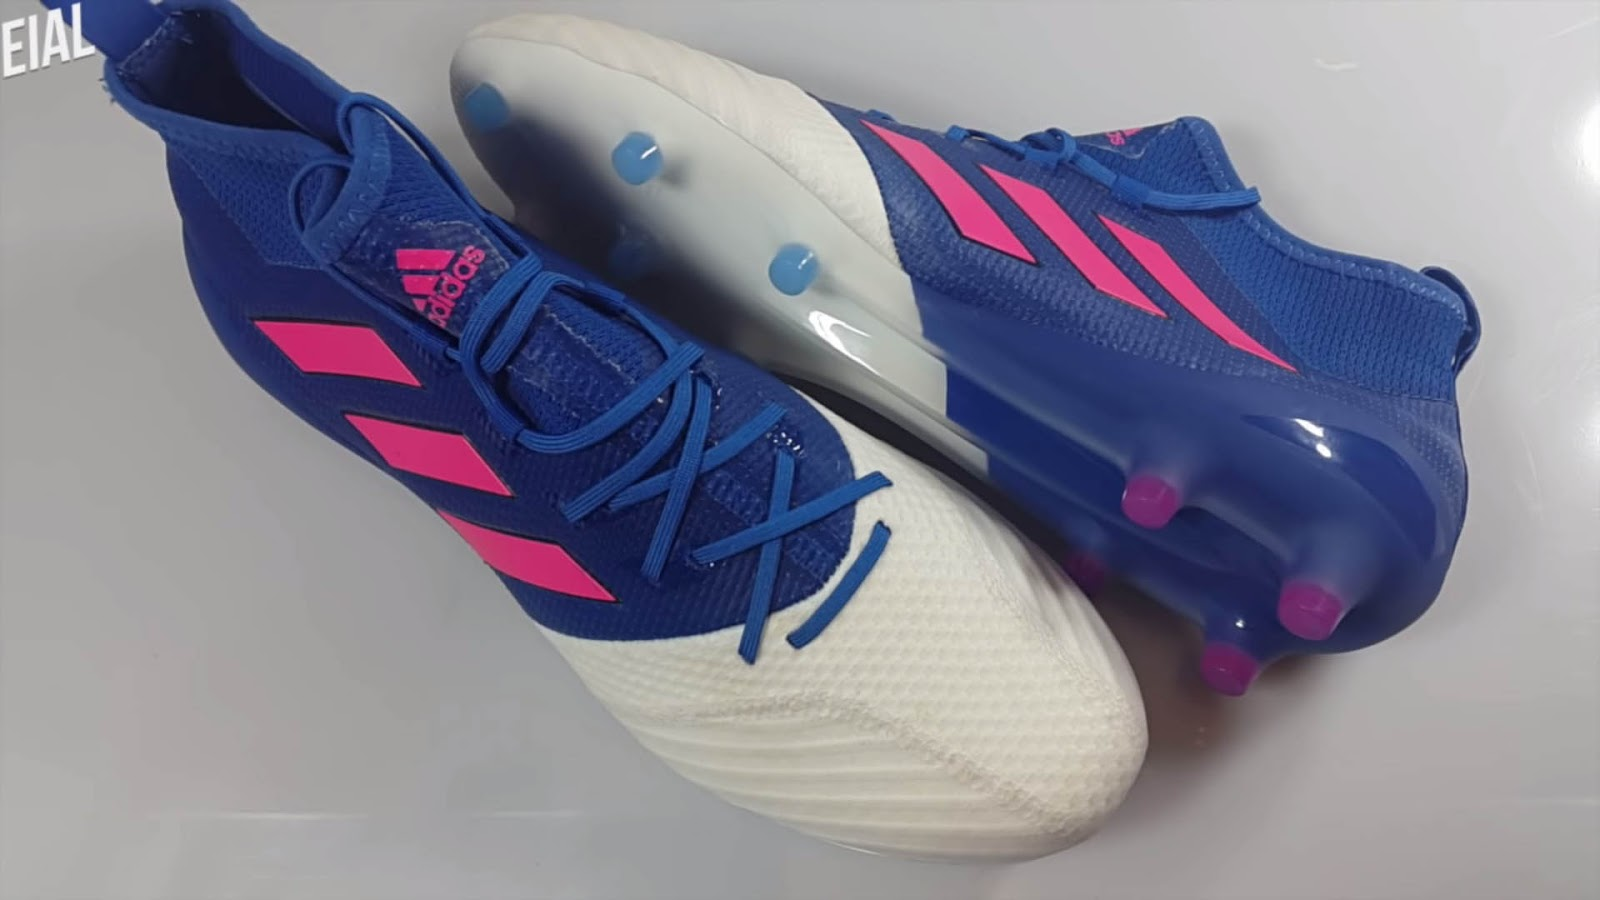 blue-white-pink-next-gen-adidas-ace-17 (2)